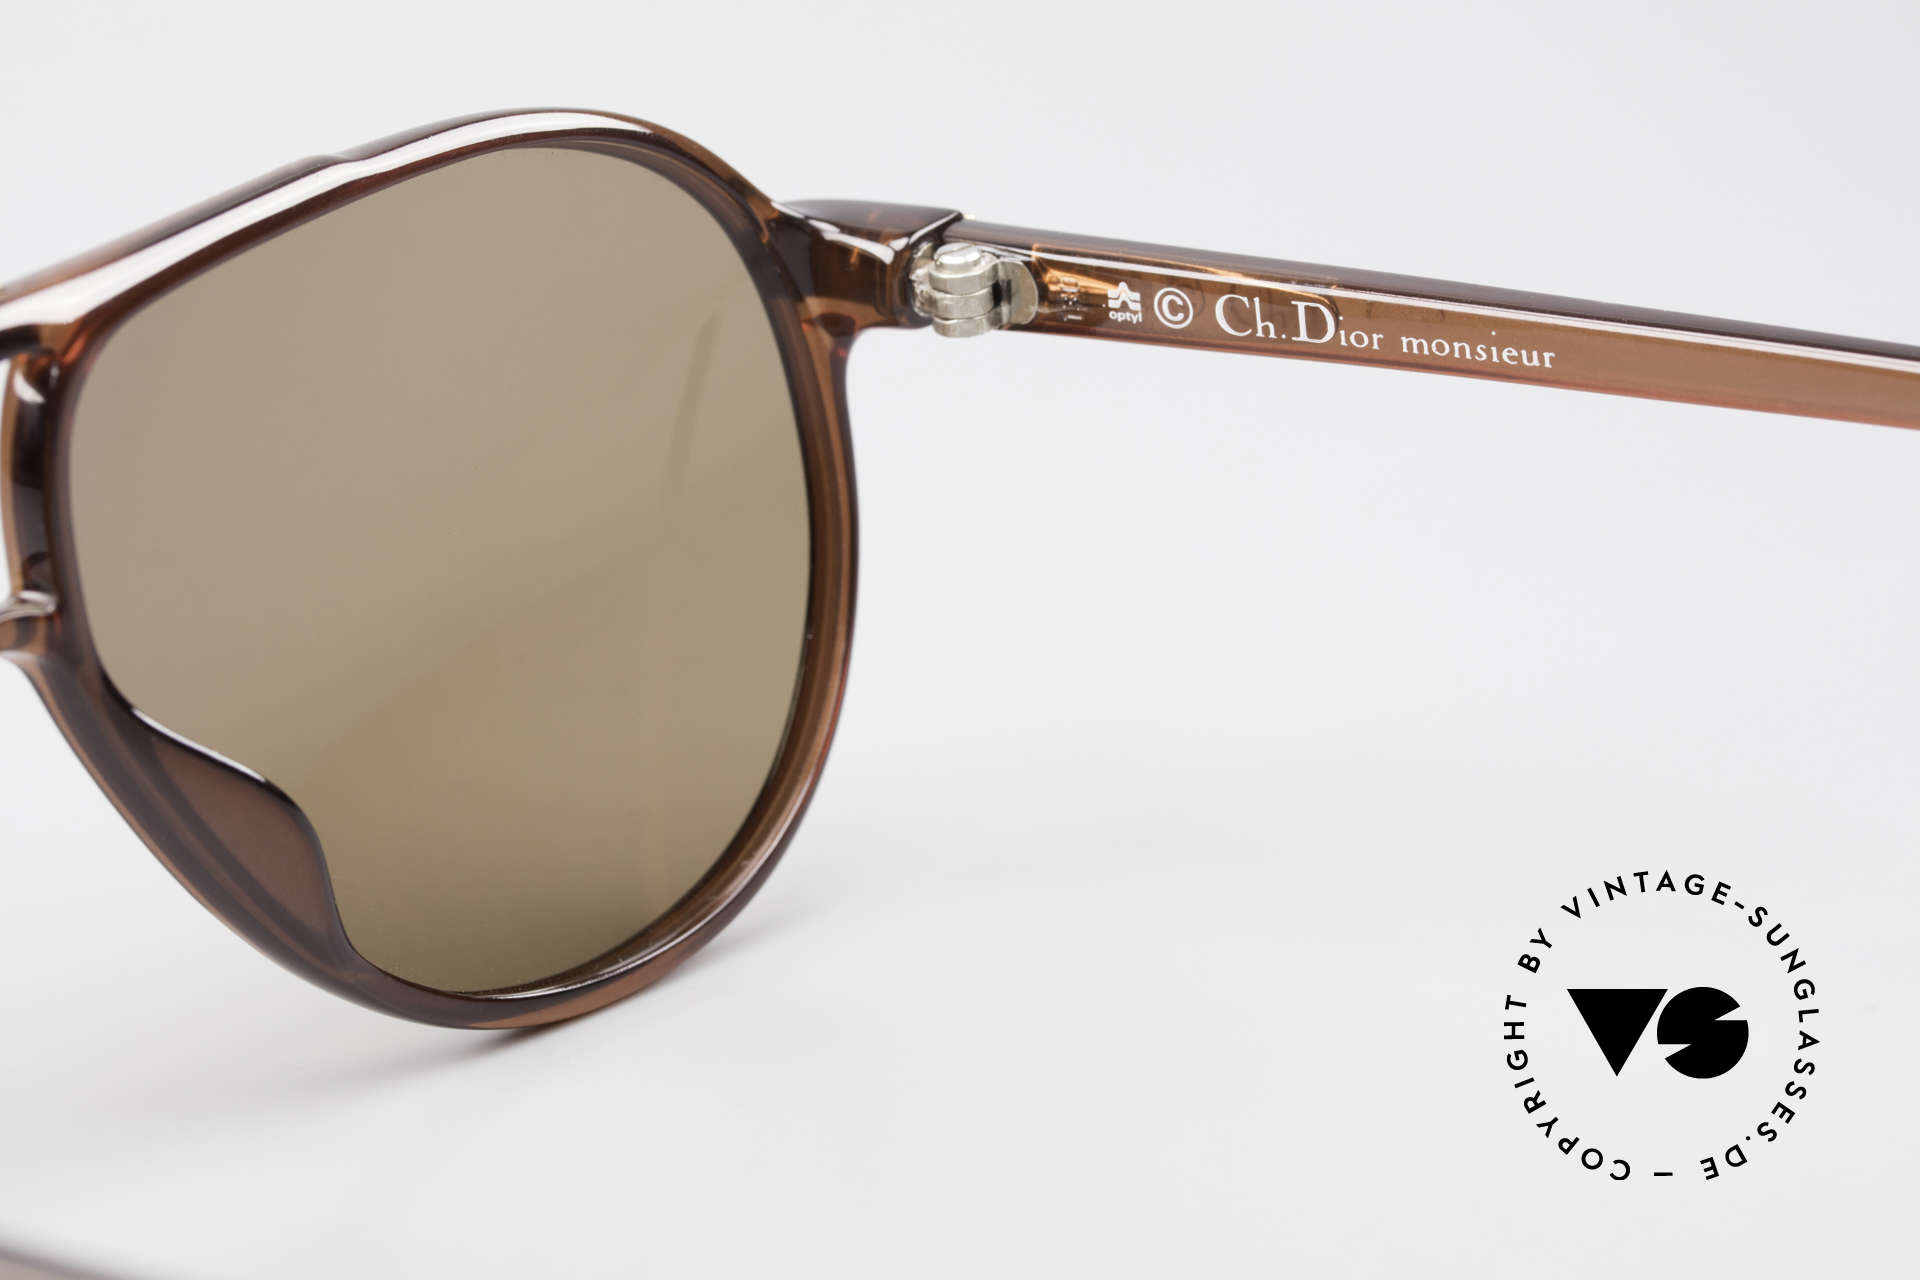 Christian Dior 2300 80's Aviator Sunglasses Optyl, SMALL size 58/10 with noble 'gold/brown' coloring, Made for Men